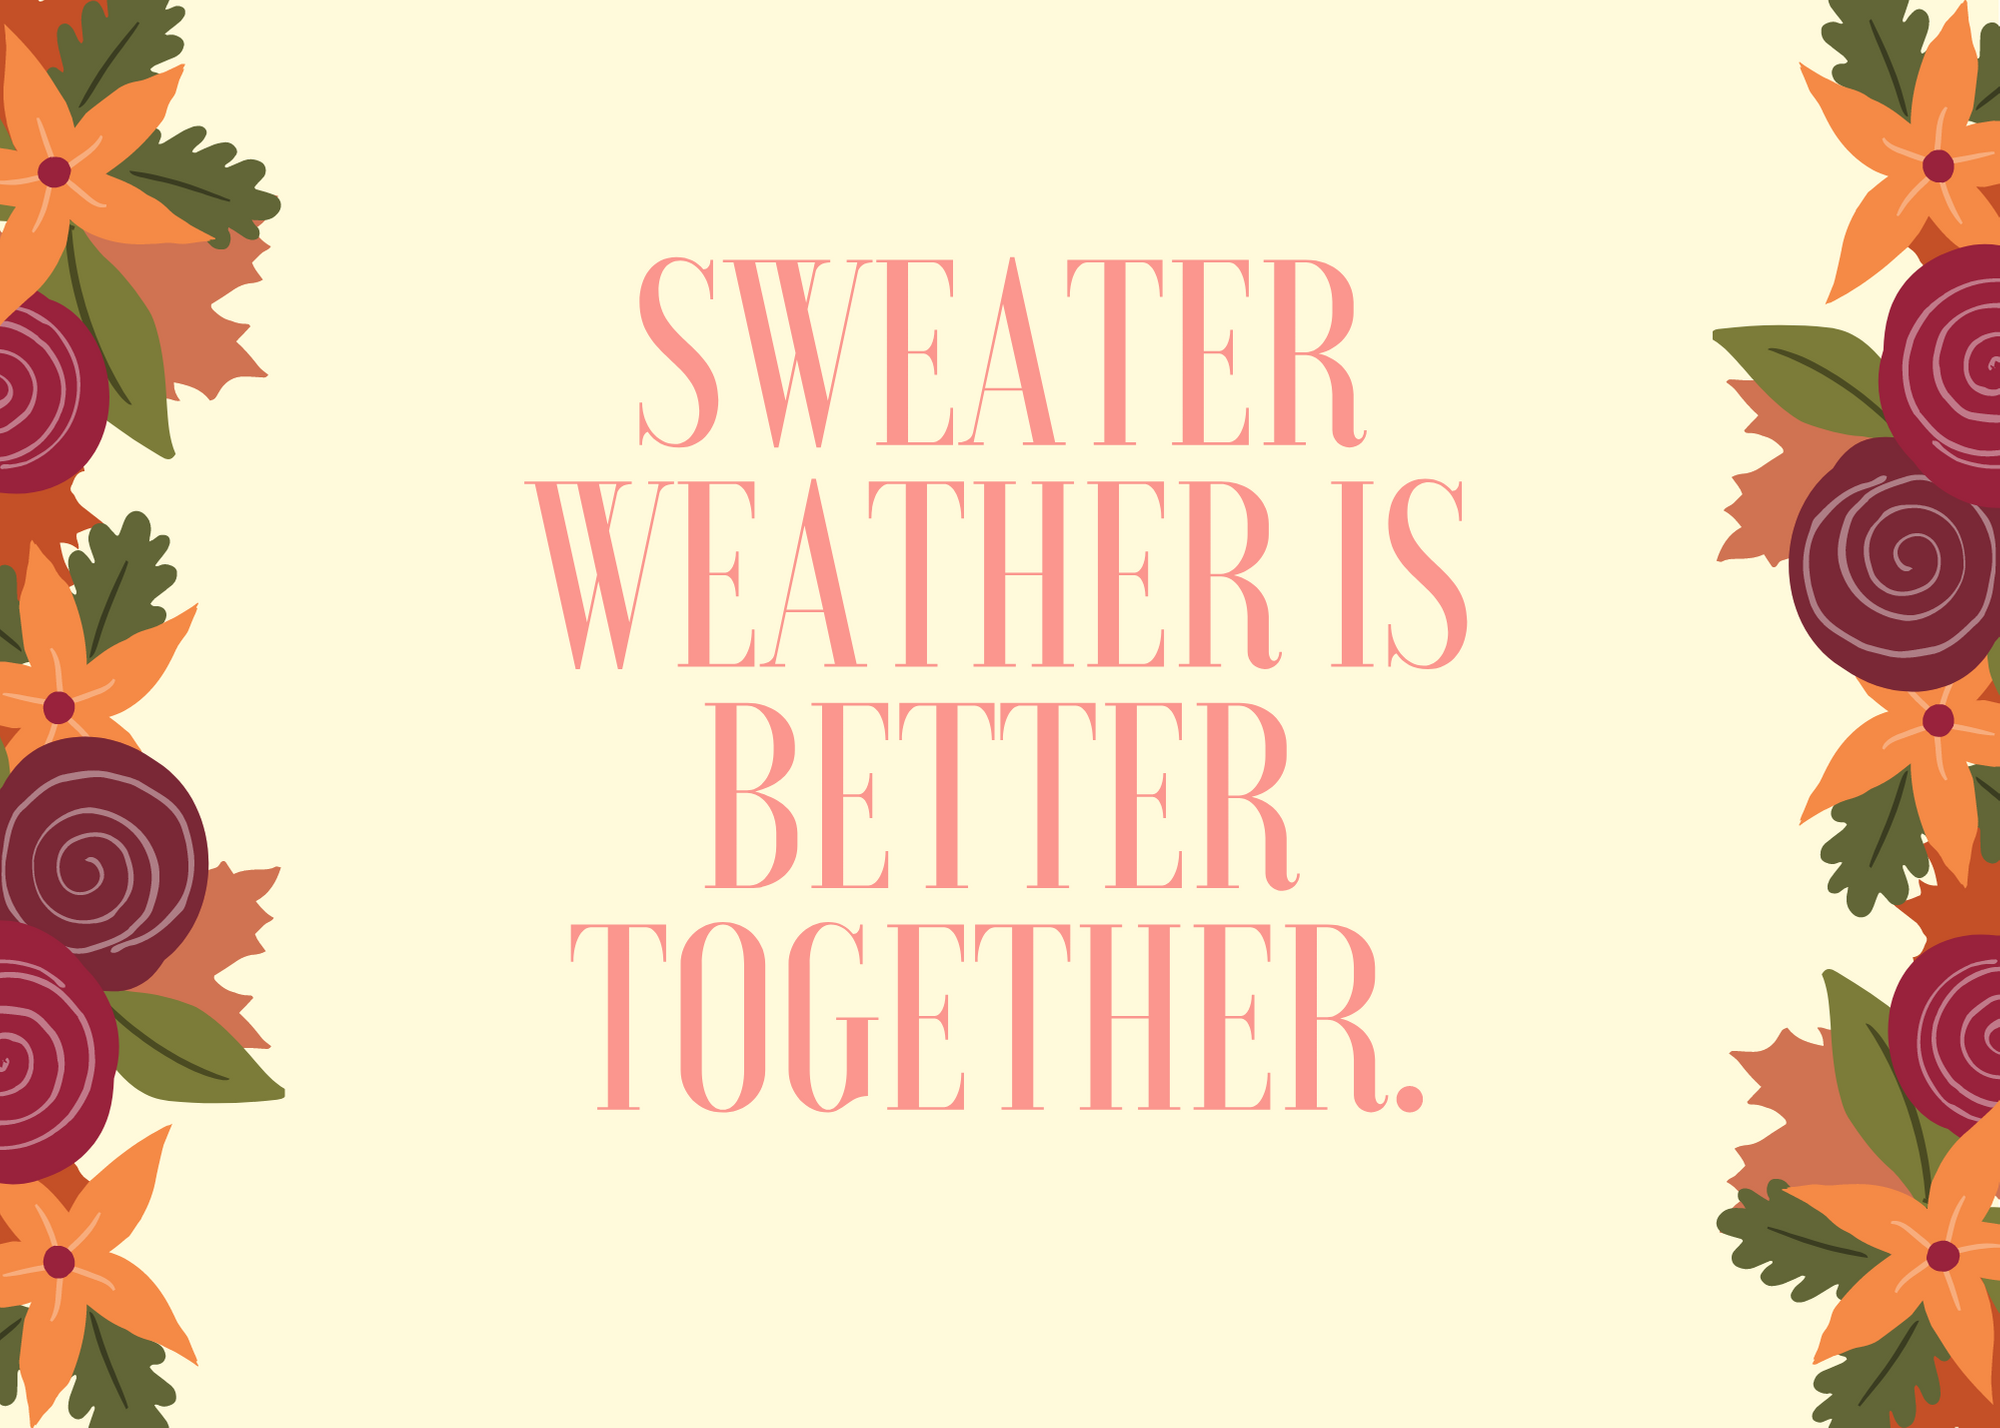 Funny Fall Instagram Caption About Sweater Sweater